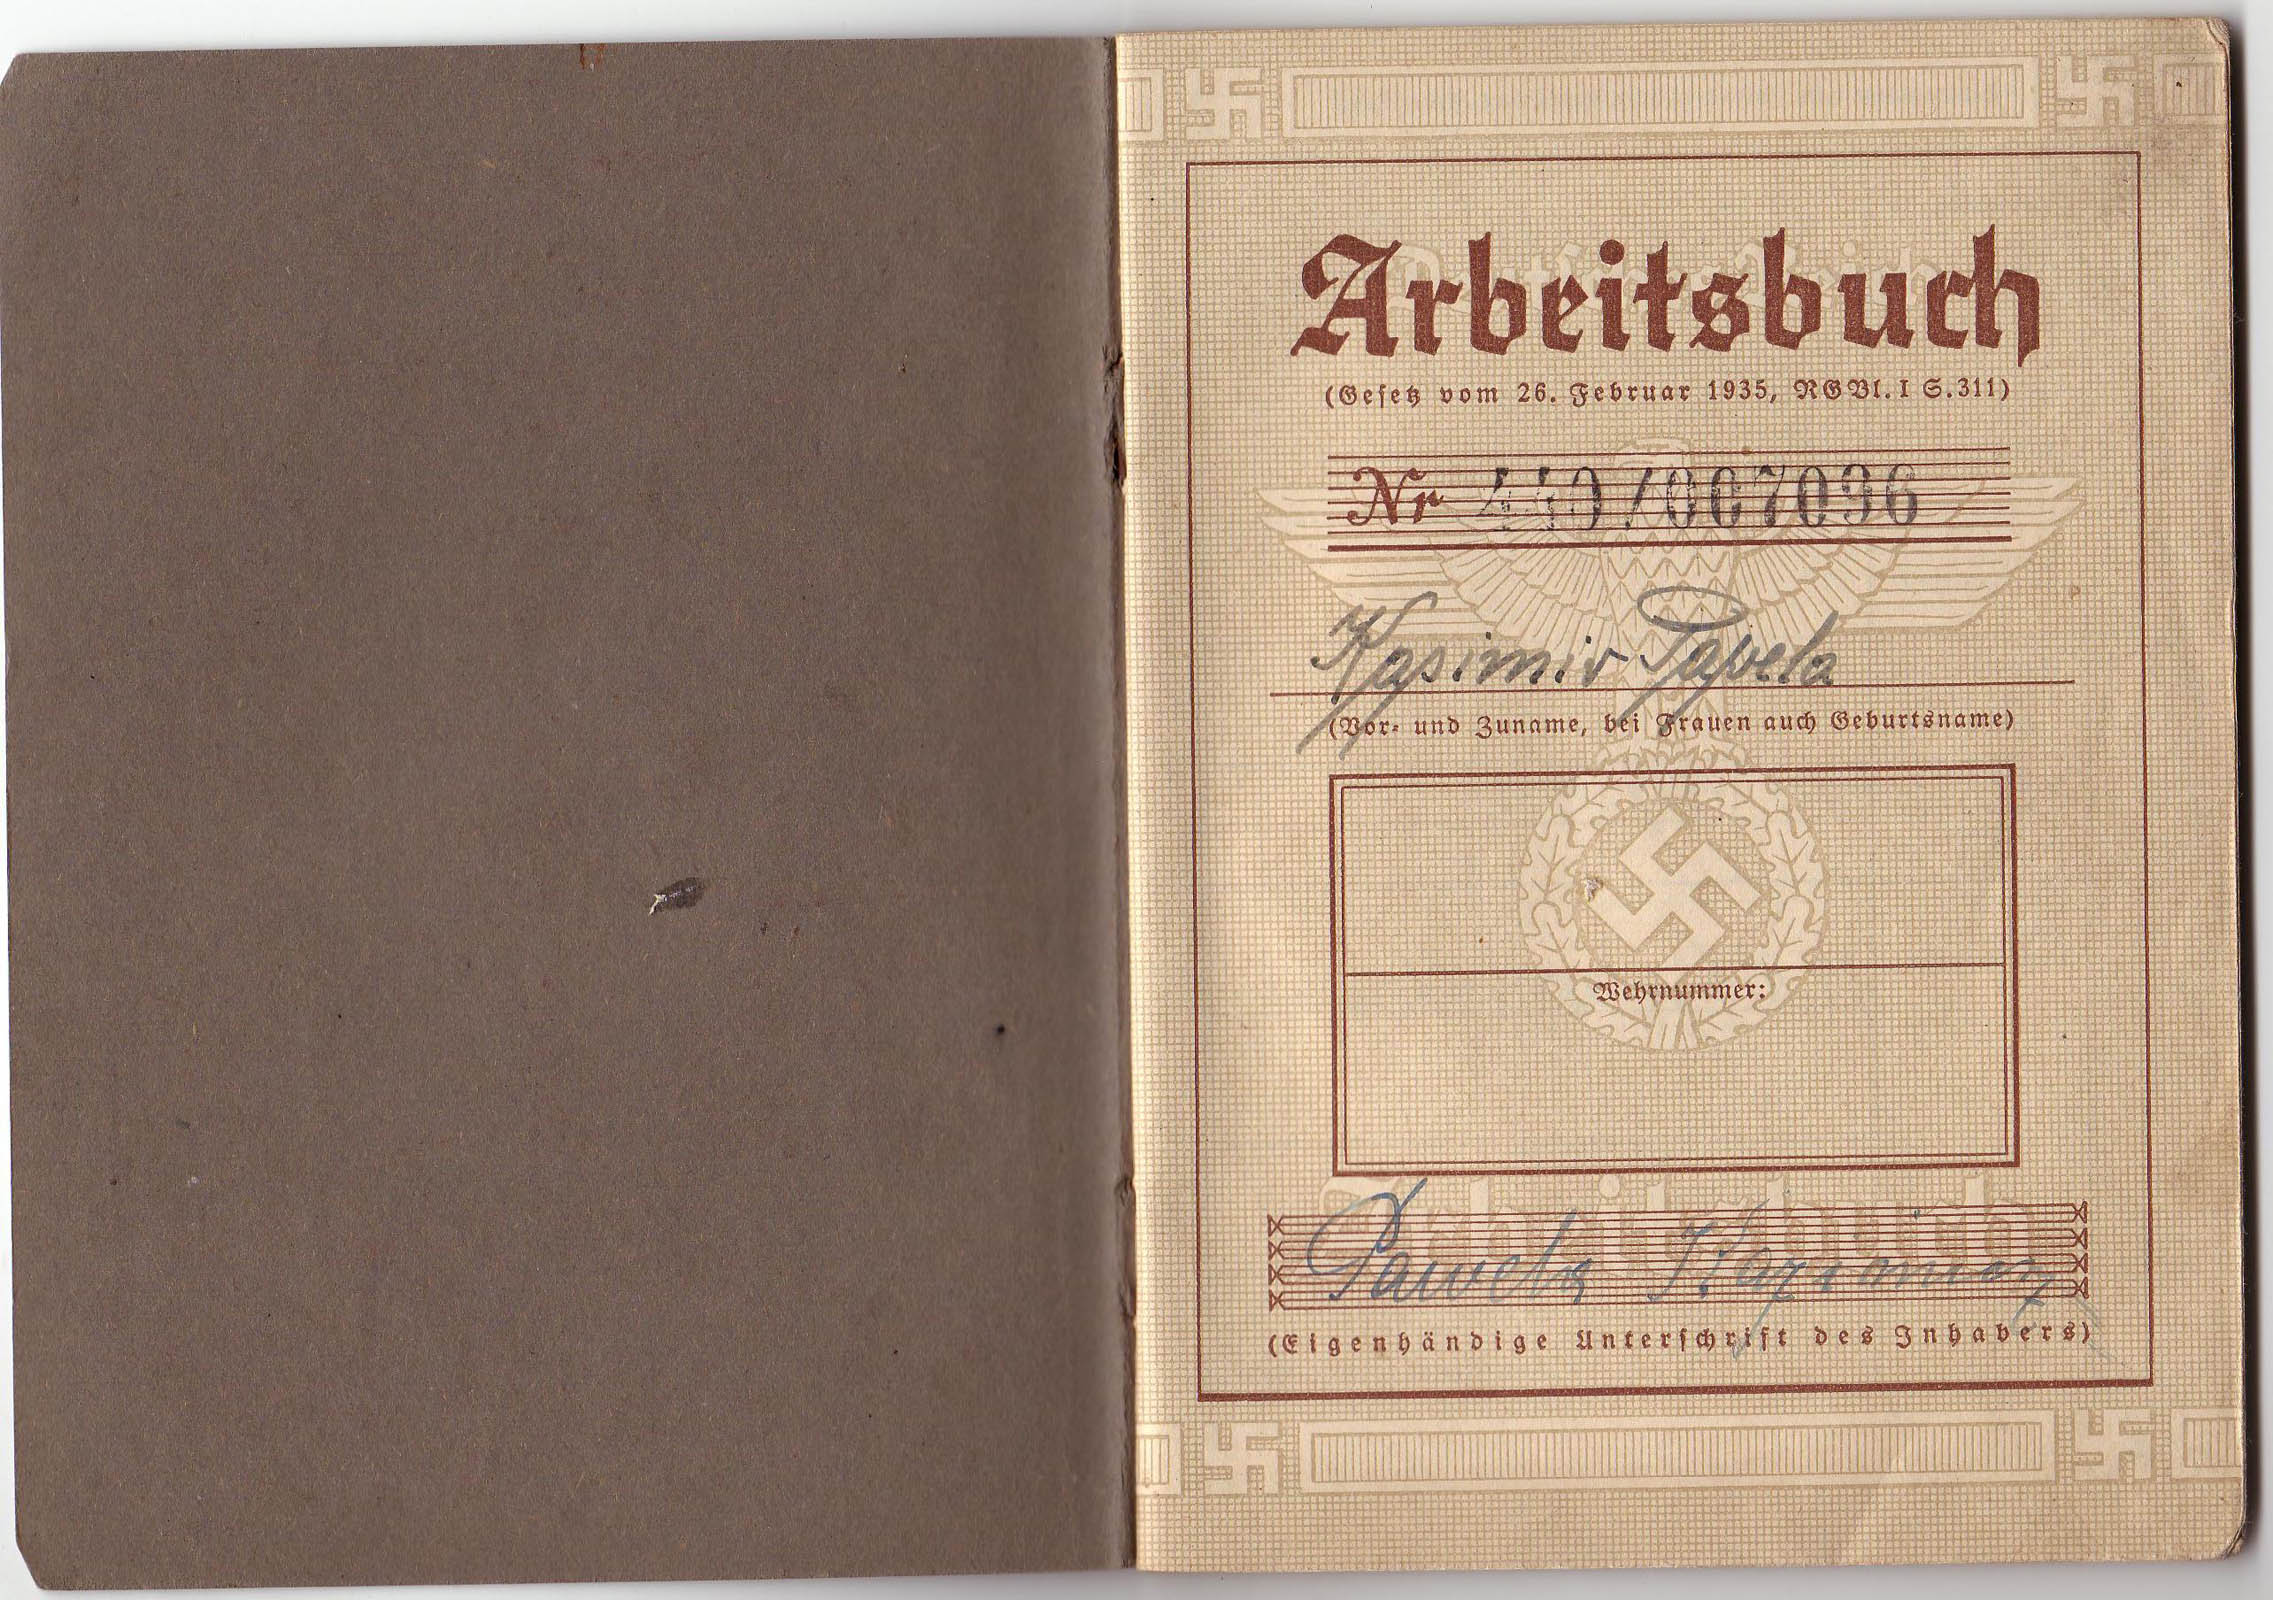 Arbeitsbuch of civilian worker from Janinagrube 2